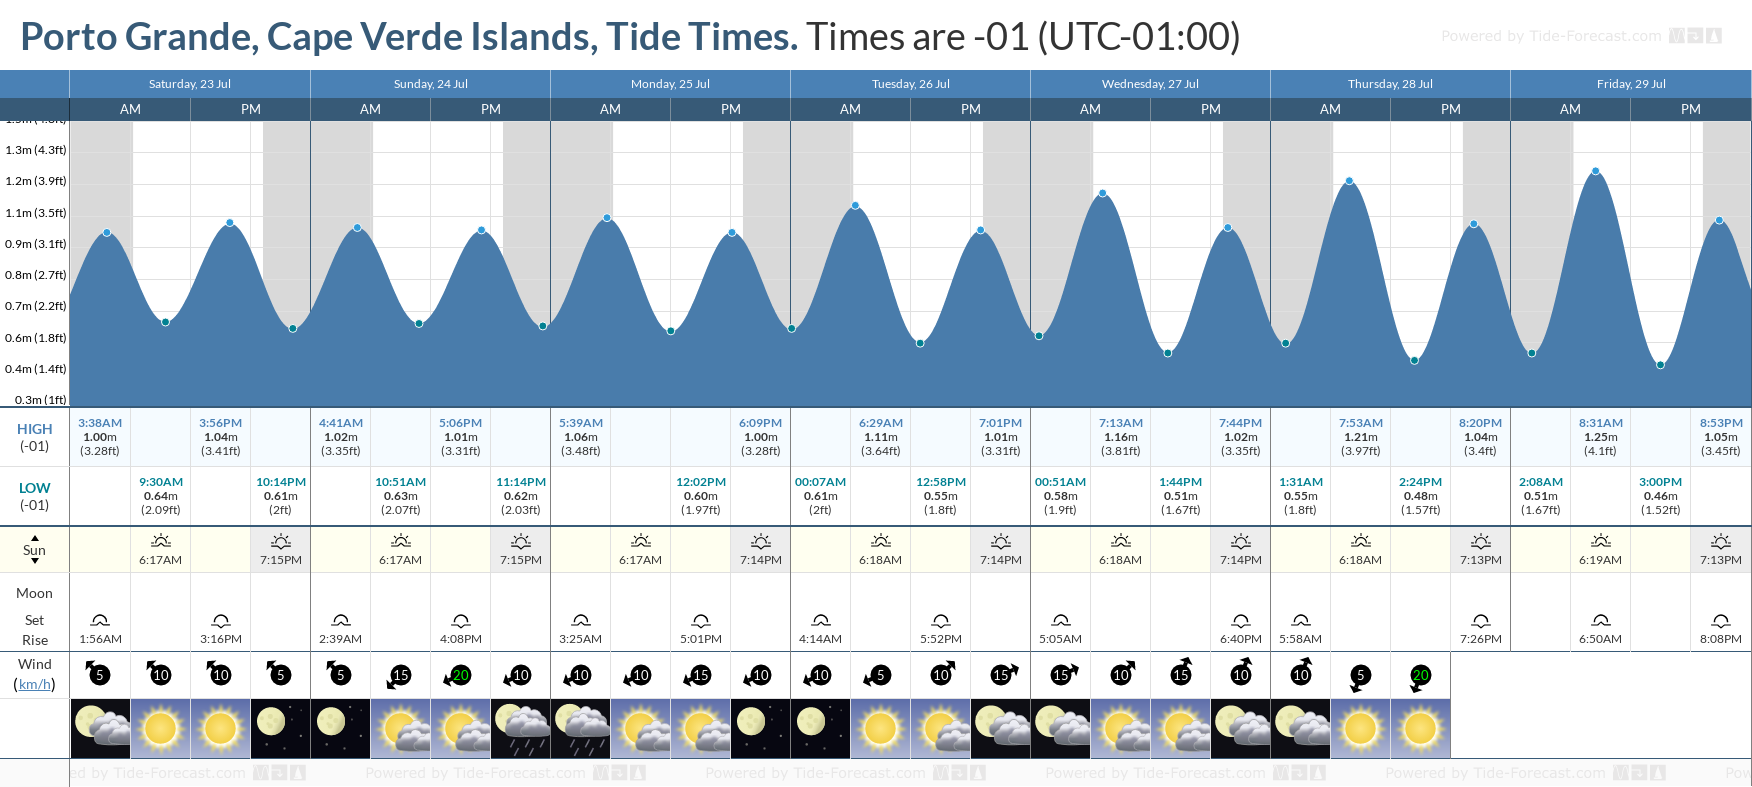 Porto Grande, Cape Verde Islands Tide Chart including high and low tide tide times for the next 7 days